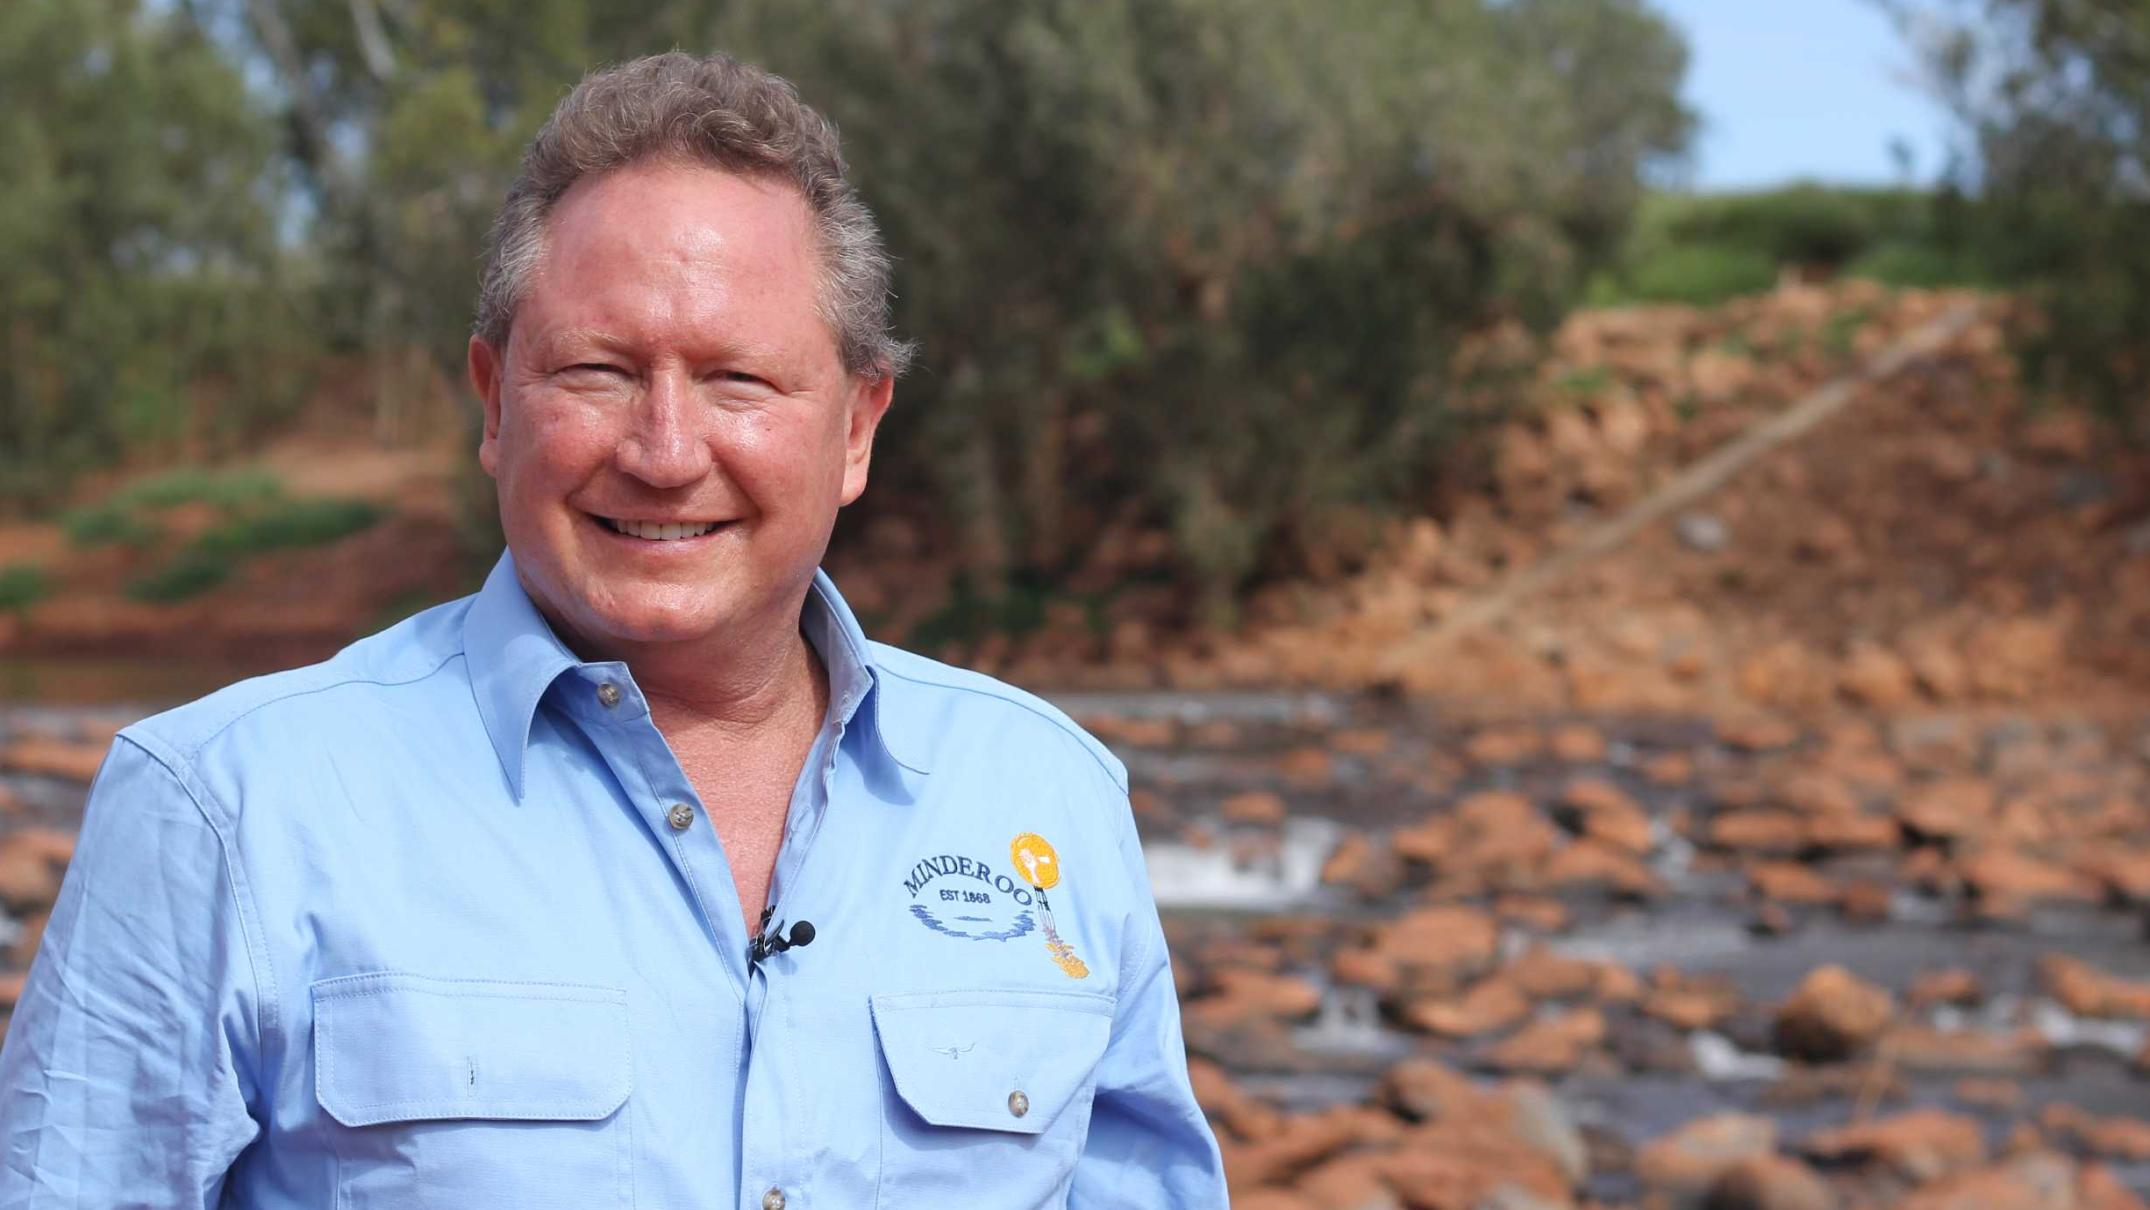 a-look-inside-andrew-forrest's-growing-'agrifood'-business